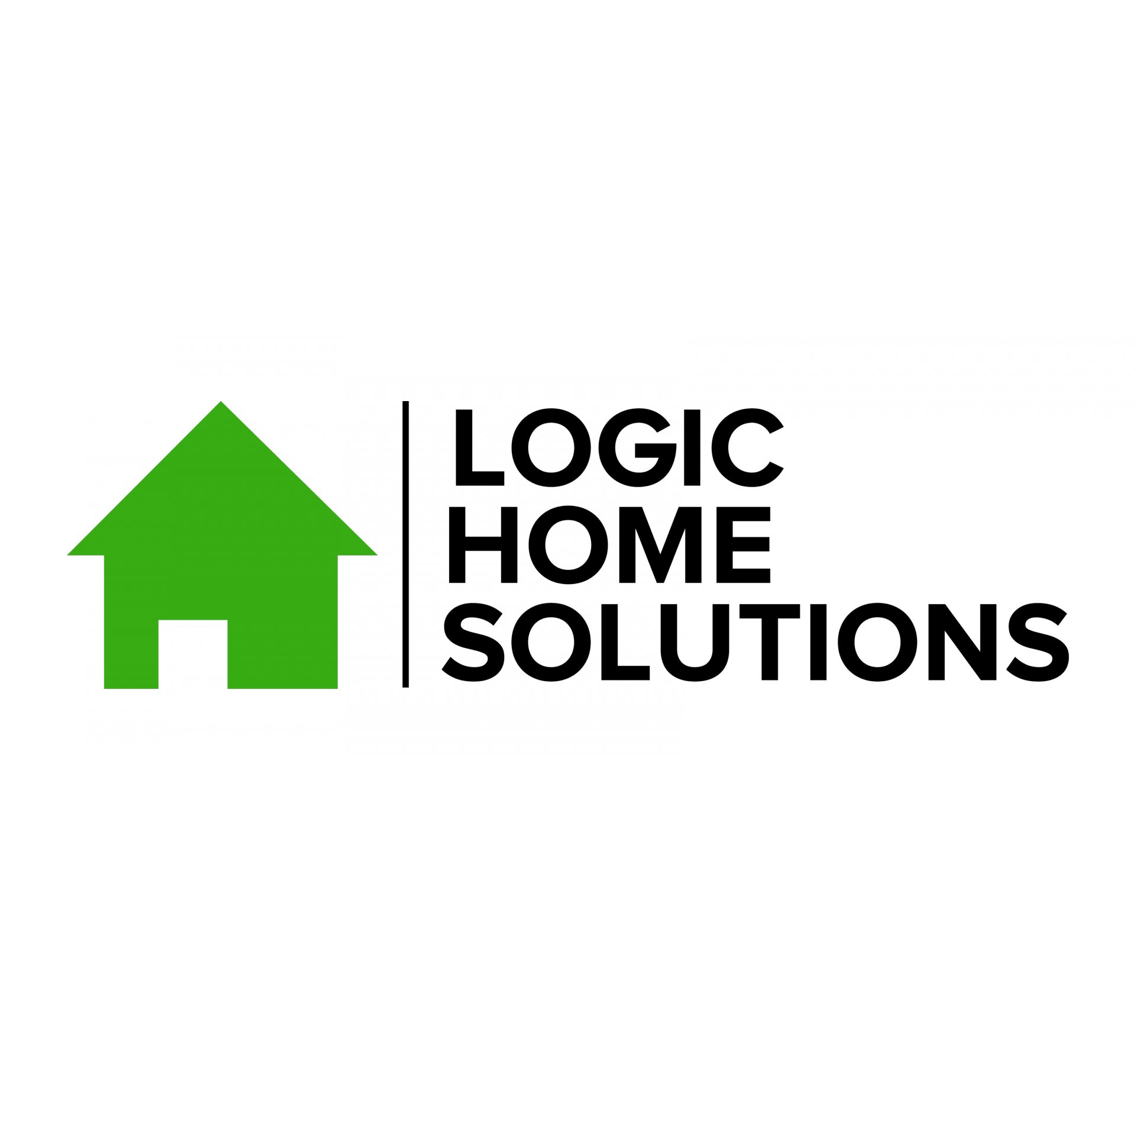 Logic Home Solutions Coupons Near Me In Austin 8coupons